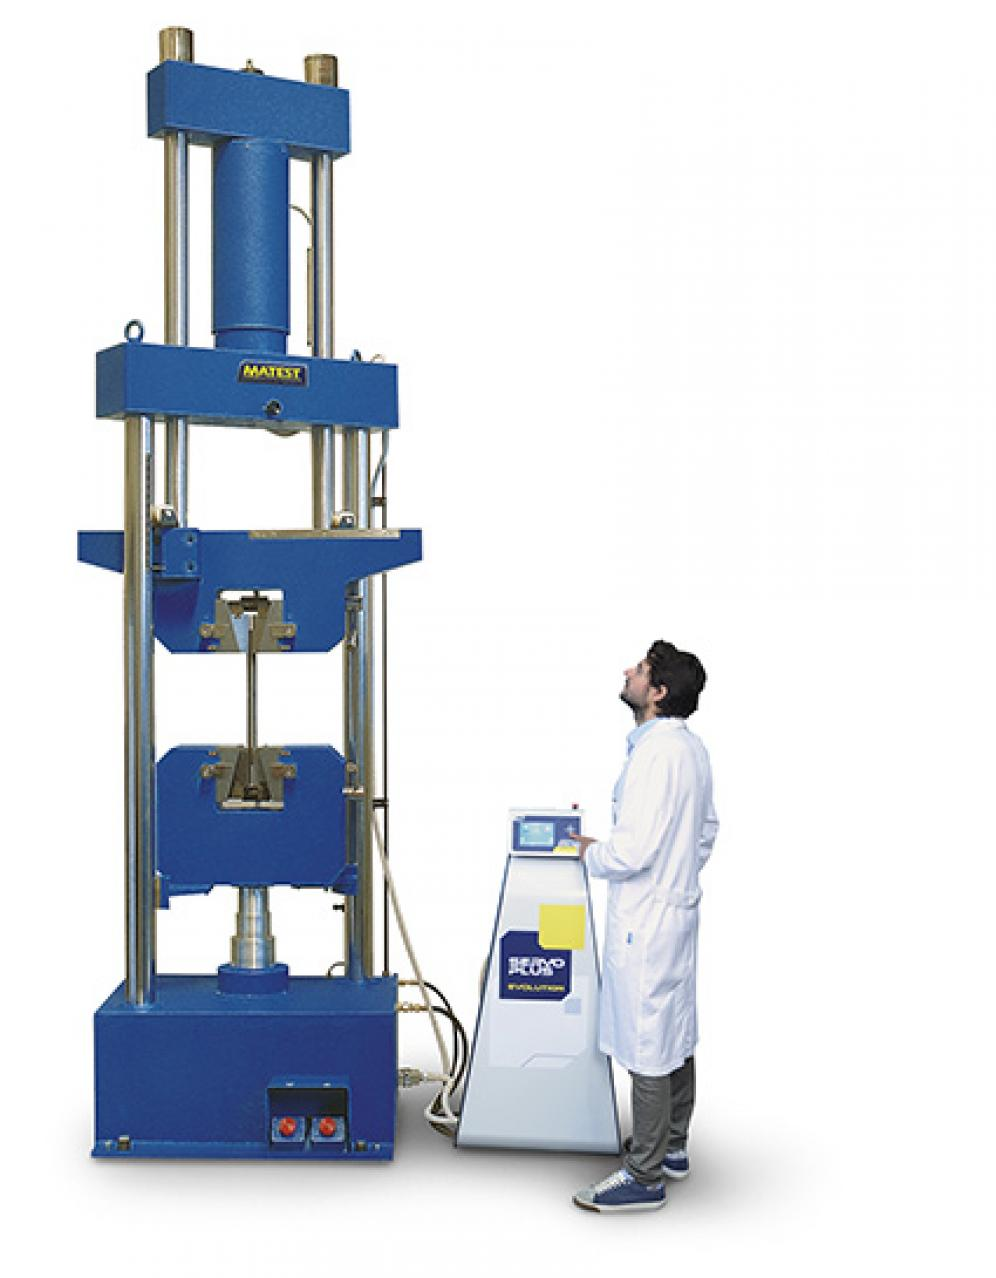 Universal hydraulic servo-controlled machine